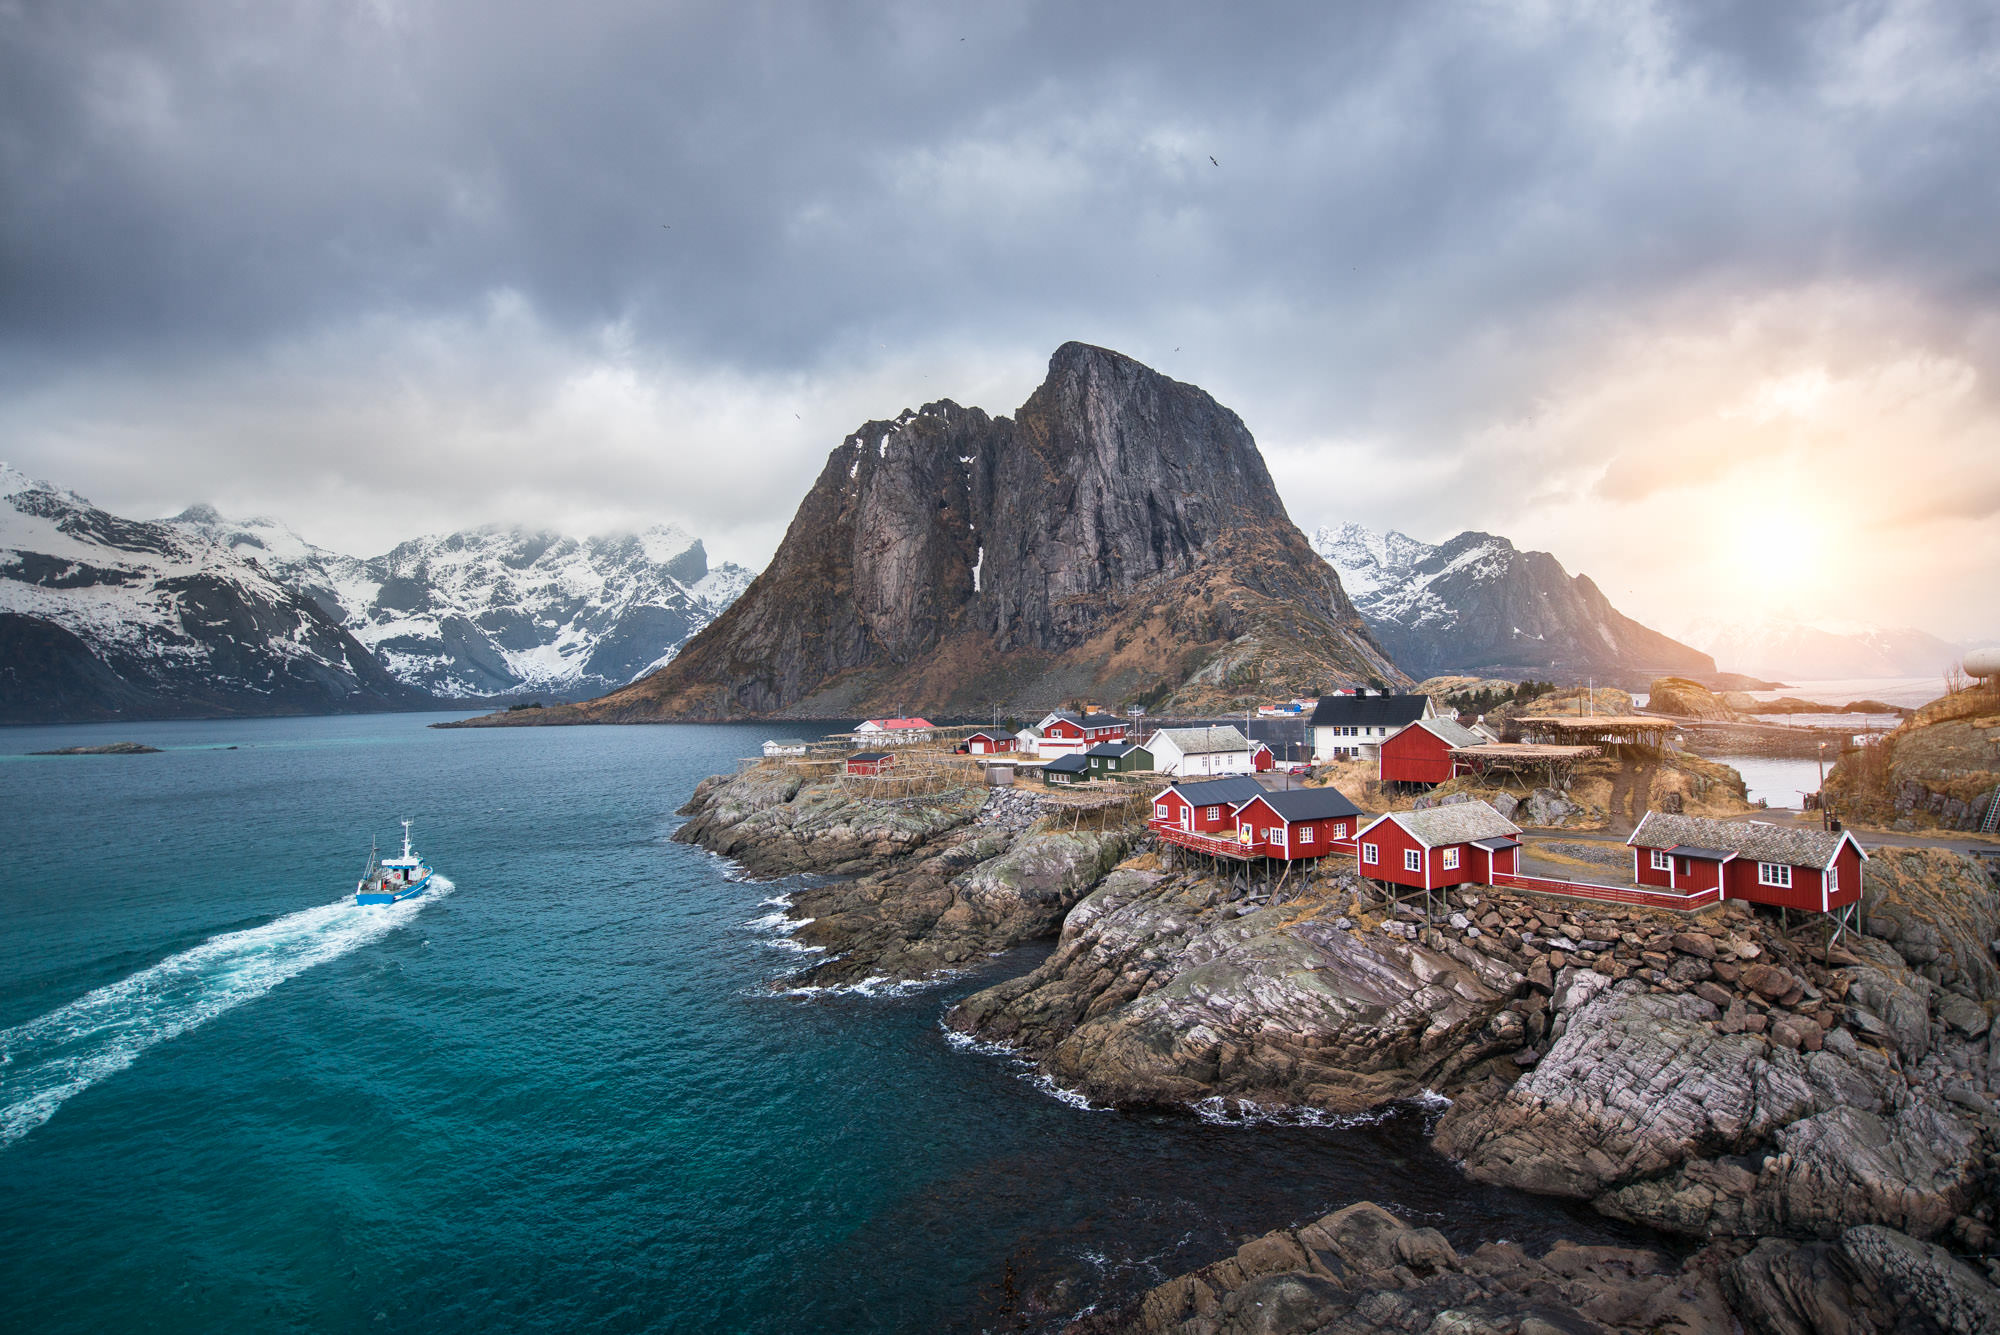 A fishing village with small red houses on the coast in Norway with a boat sailing past.